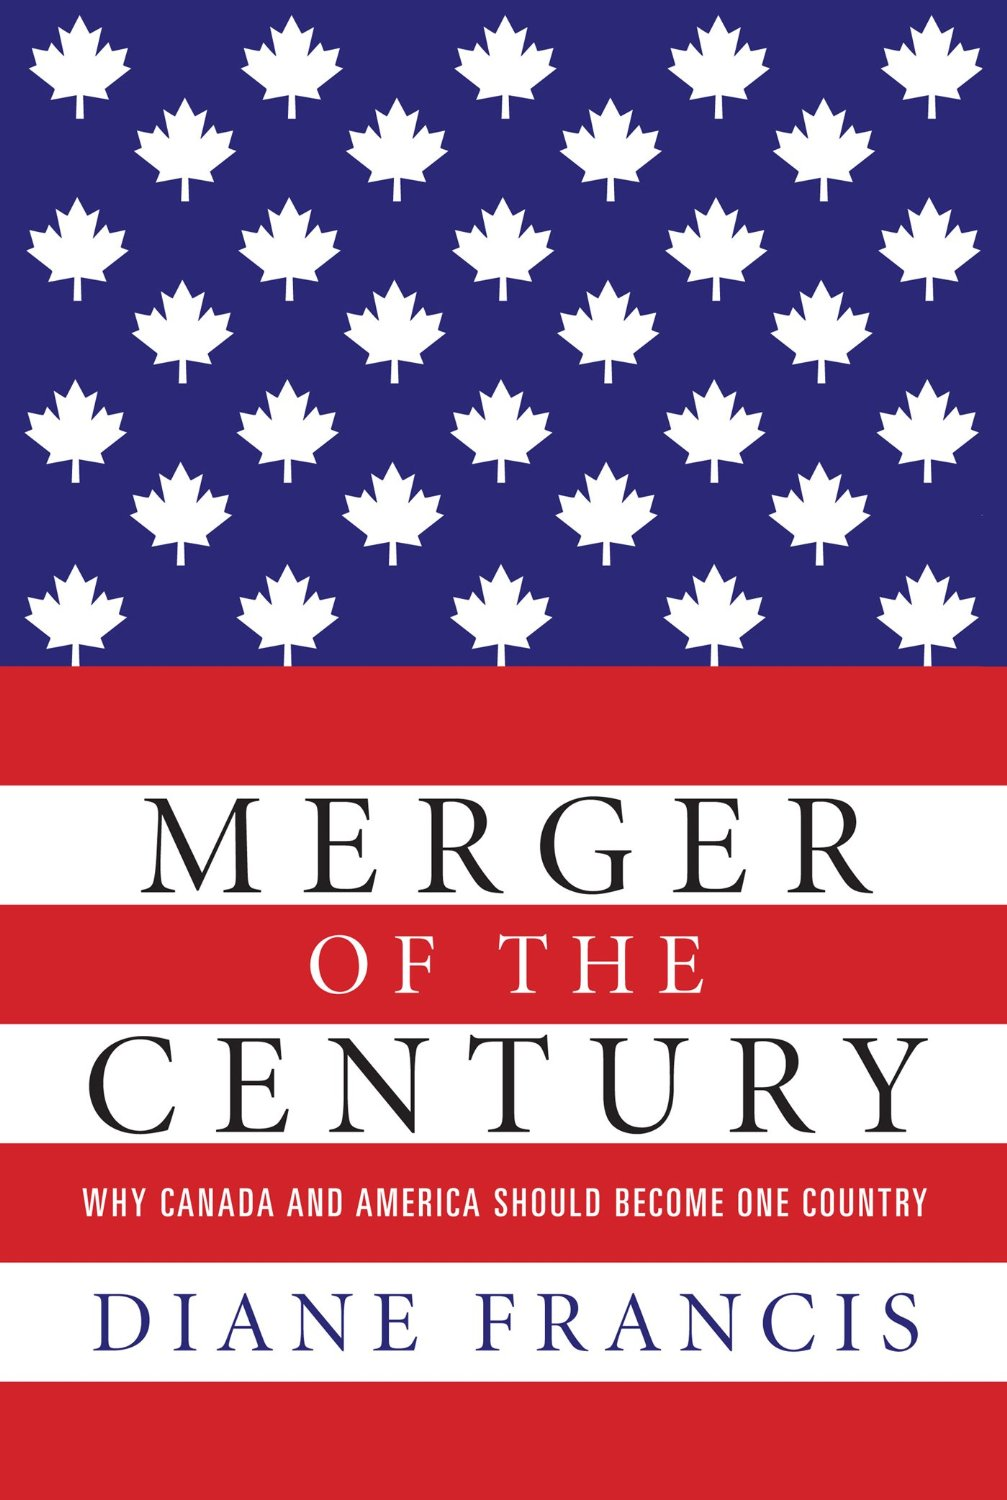 Diane Francis: Merger of the Century. Why Canada and America should become one country. Harper Collins 2013, 404 s.